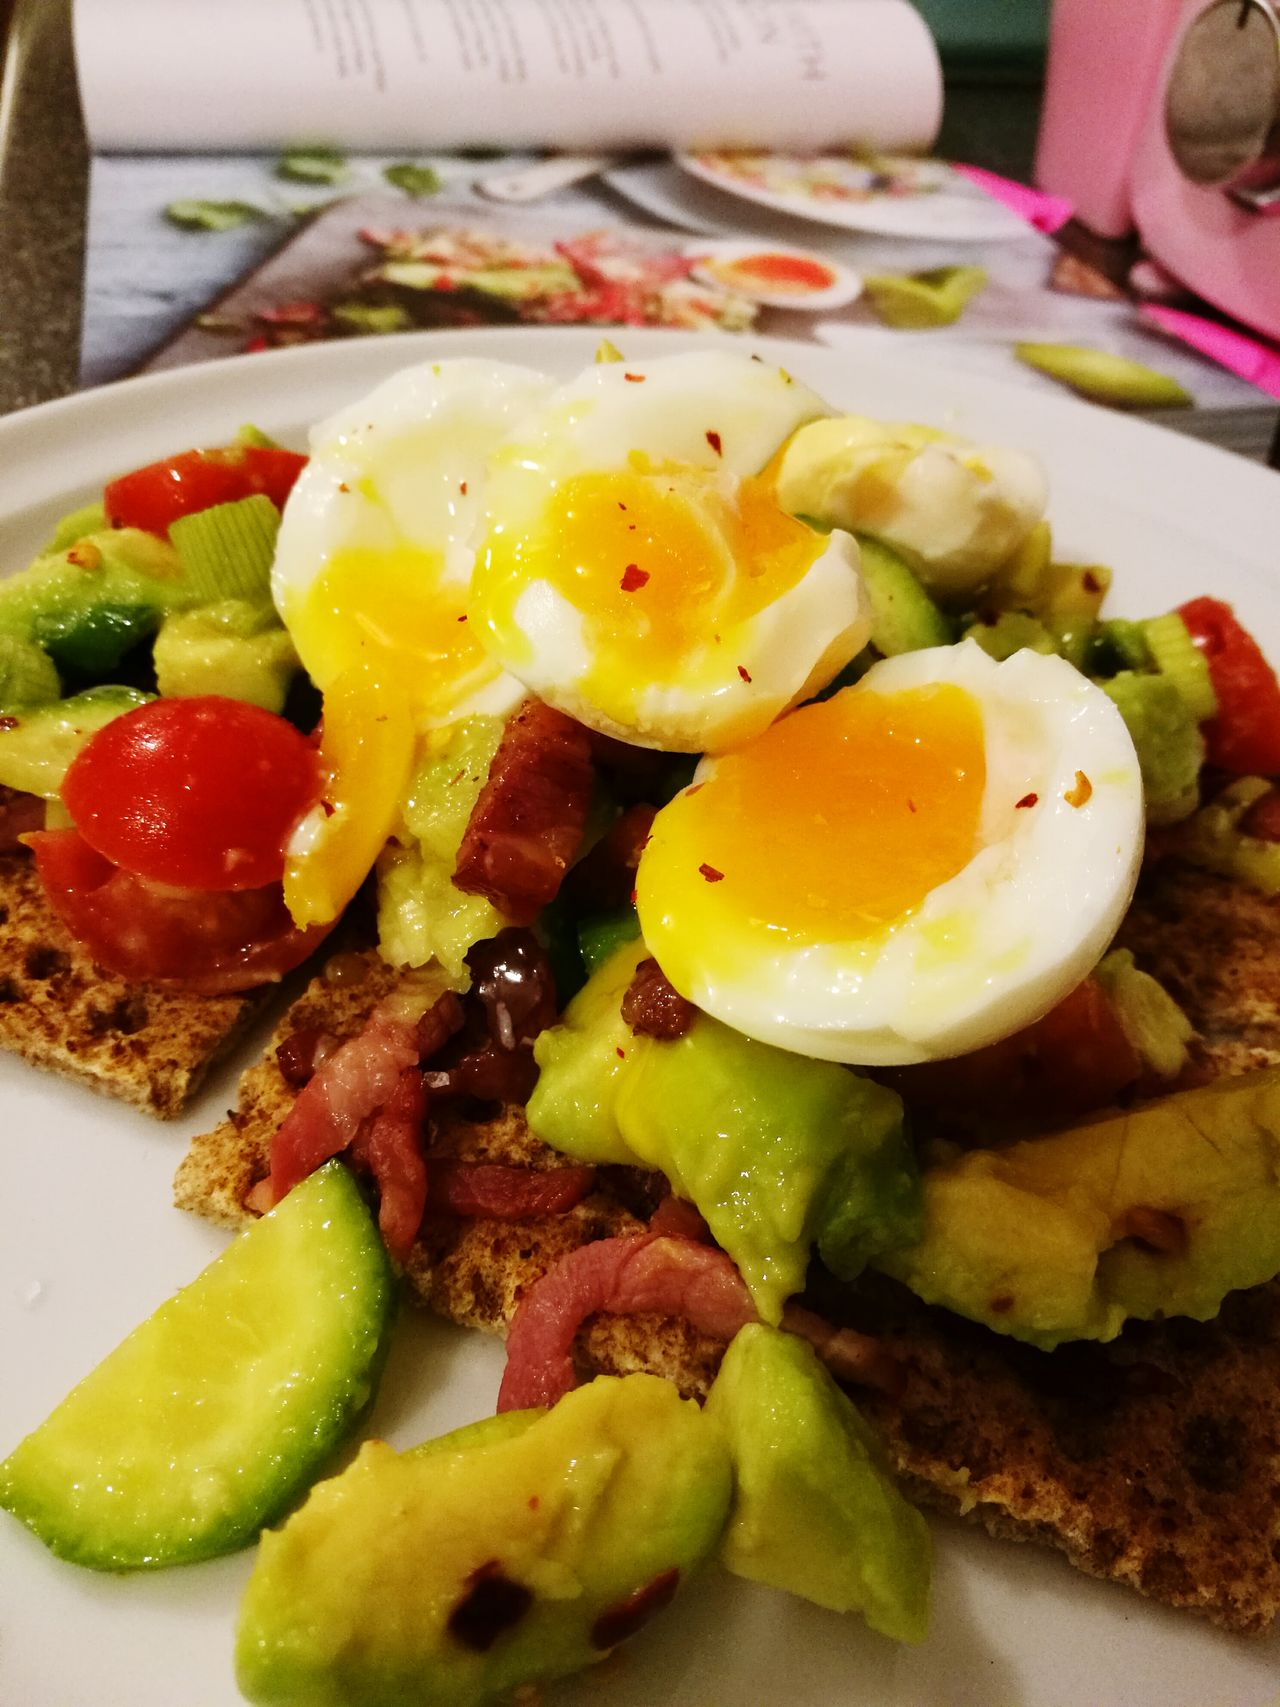 Yellow Food Egg Yolk Healthy Eating Close-up No People Indoors  Freshness Ready-to-eat Day Love Cooking Kitchen Its Ready Cucumber Rye Crackers Avacado Bacon Recipe Book Lean Chilli Flakes Spring Onion Tomato Tea Time Family EyeEm Best Shots